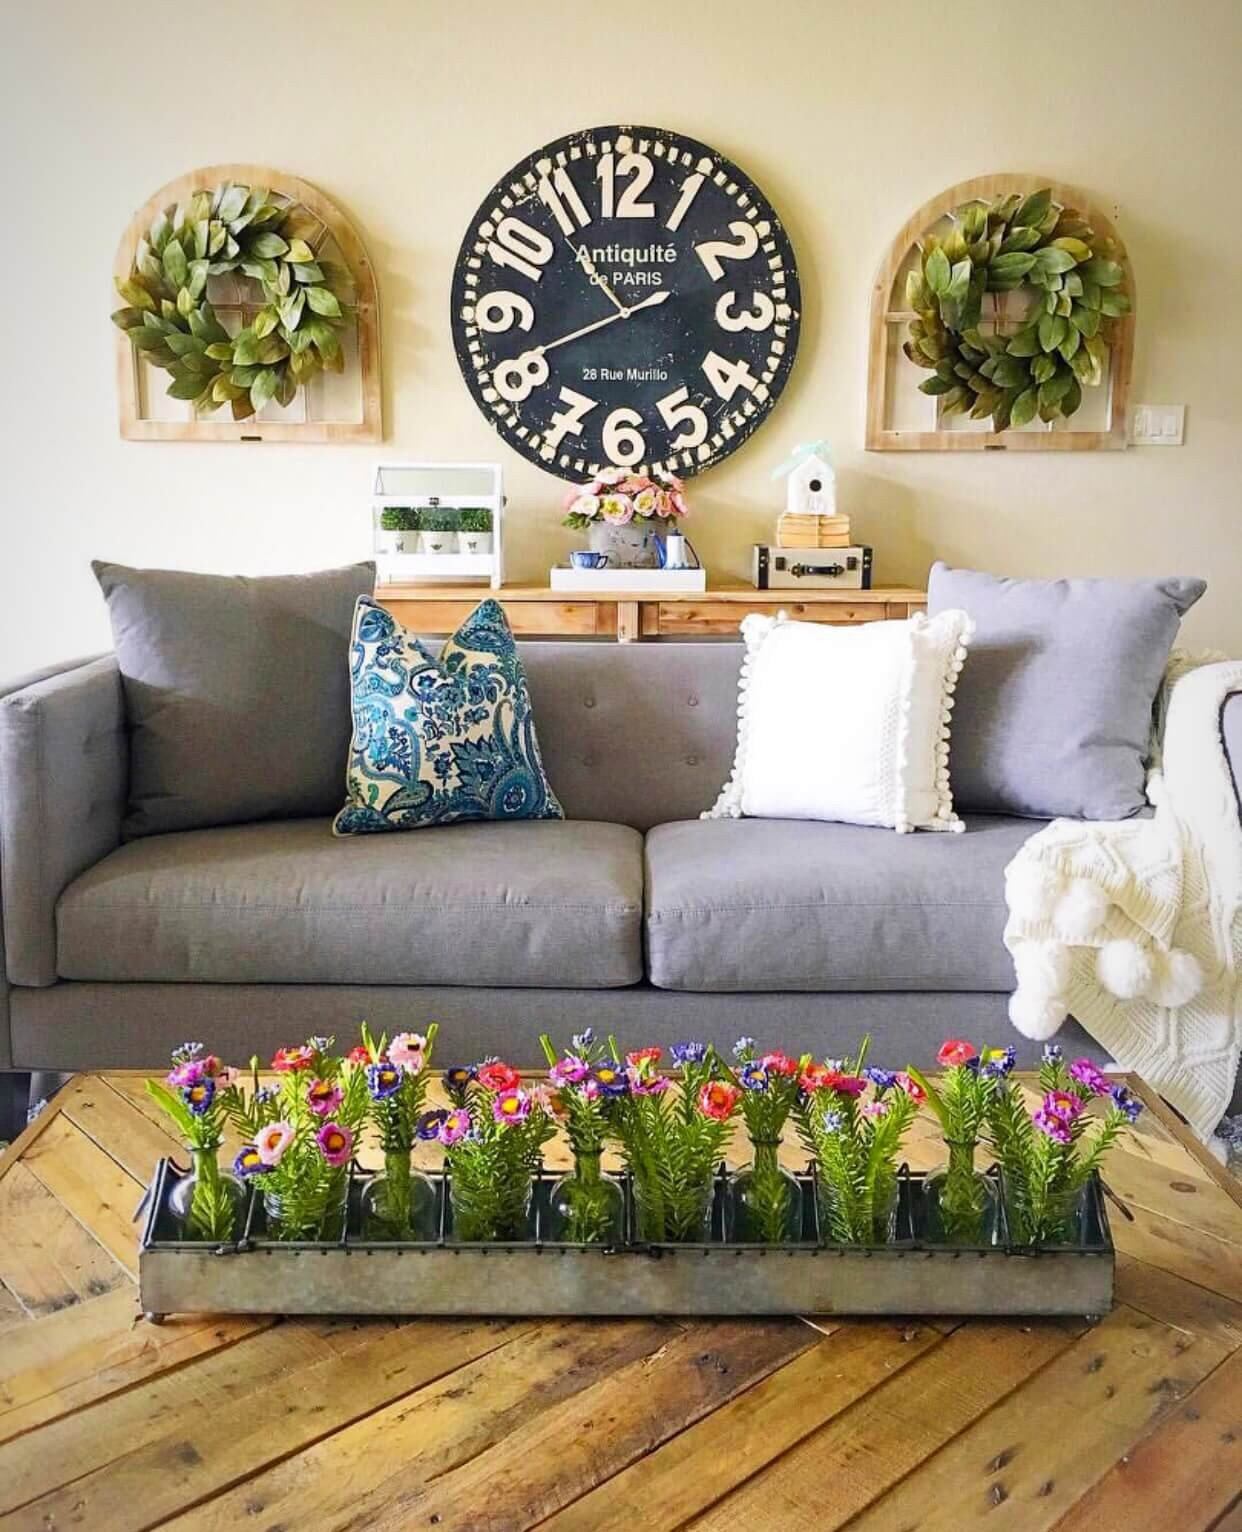 Living Room Wall Decor Ideas Inspirational 33 Best Rustic Living Room Wall Decor Ideas and Designs for 2019